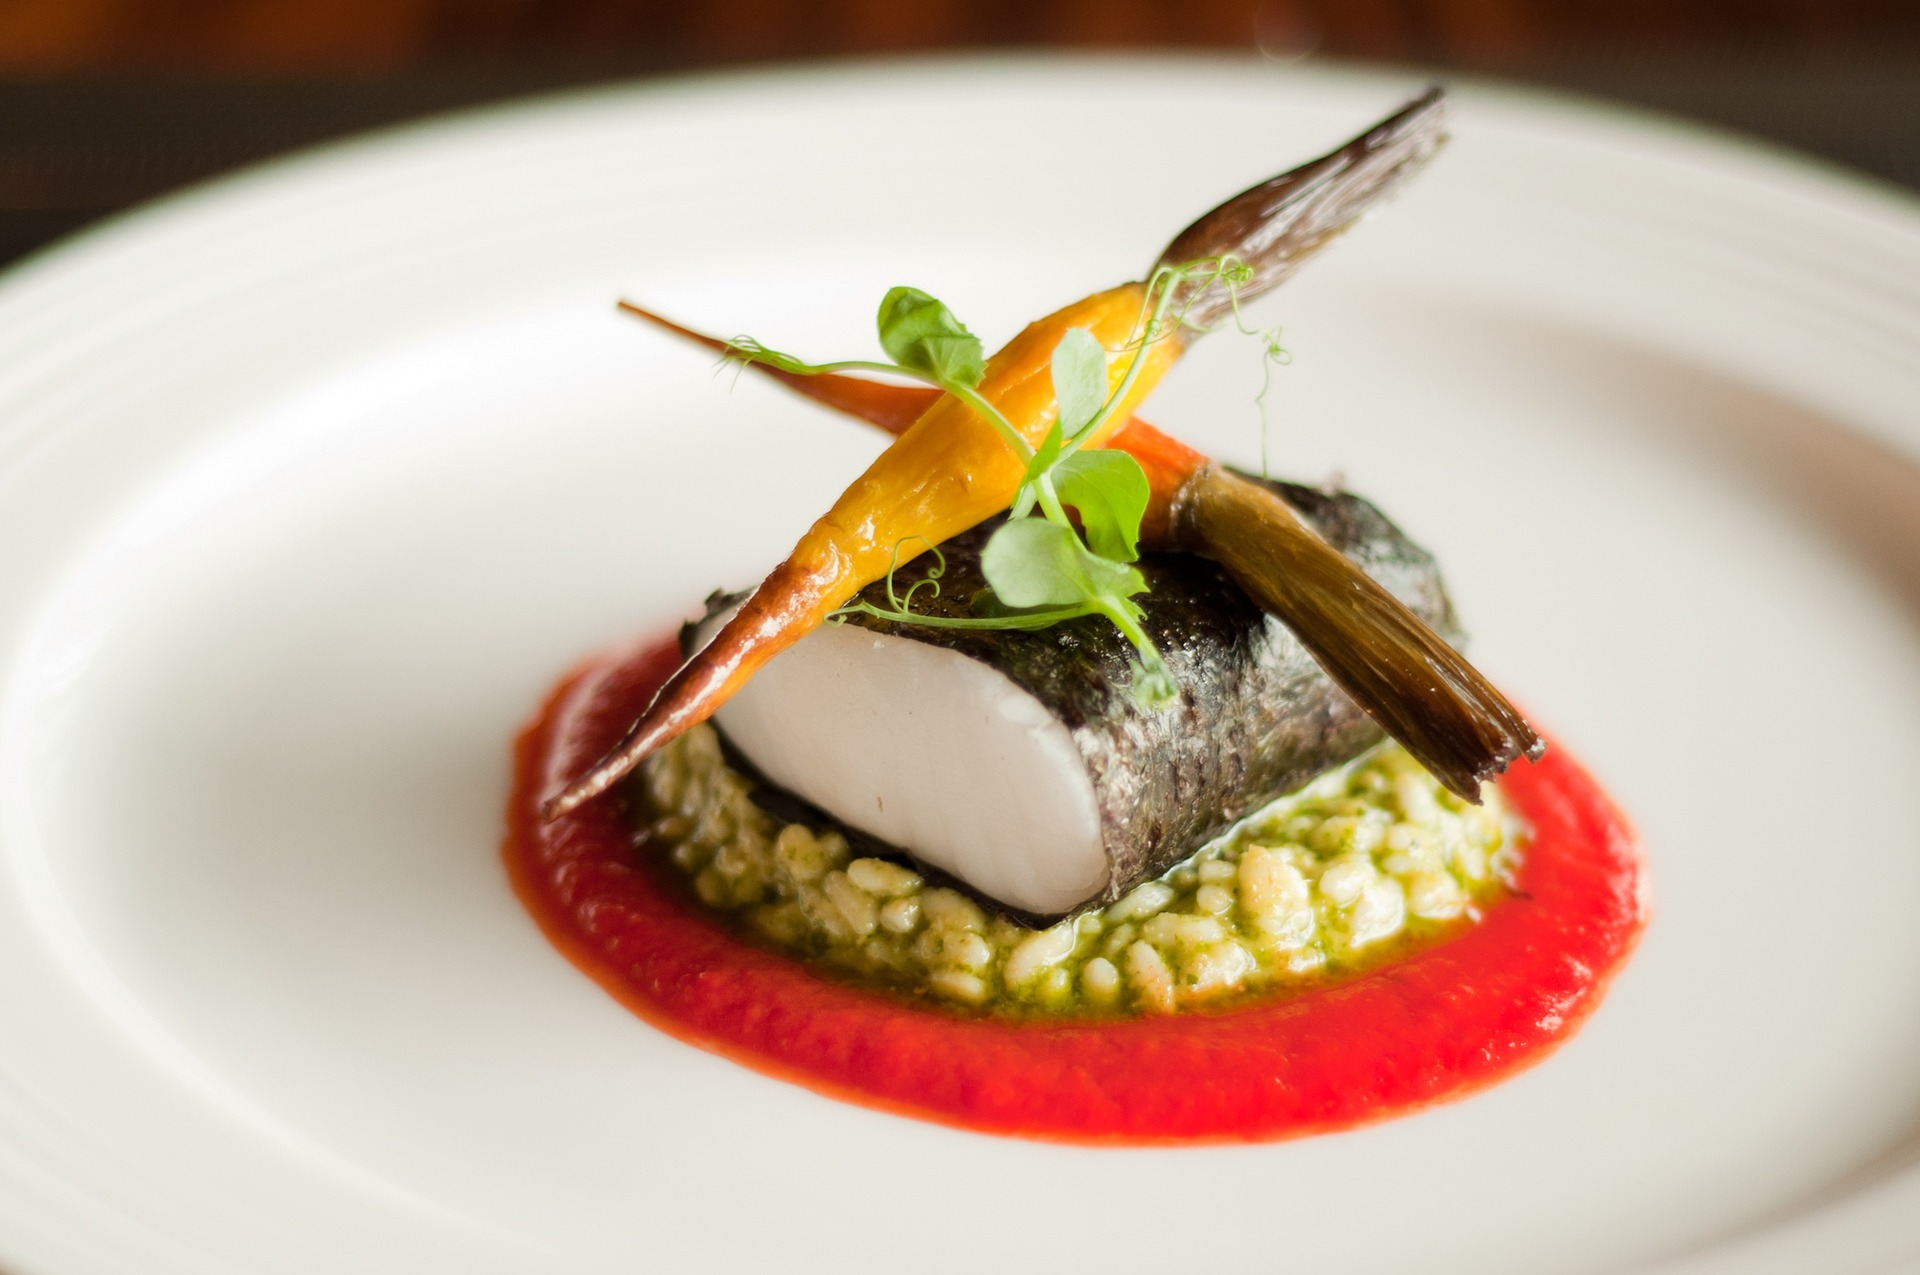 An exquisite dish, made by a private chef.